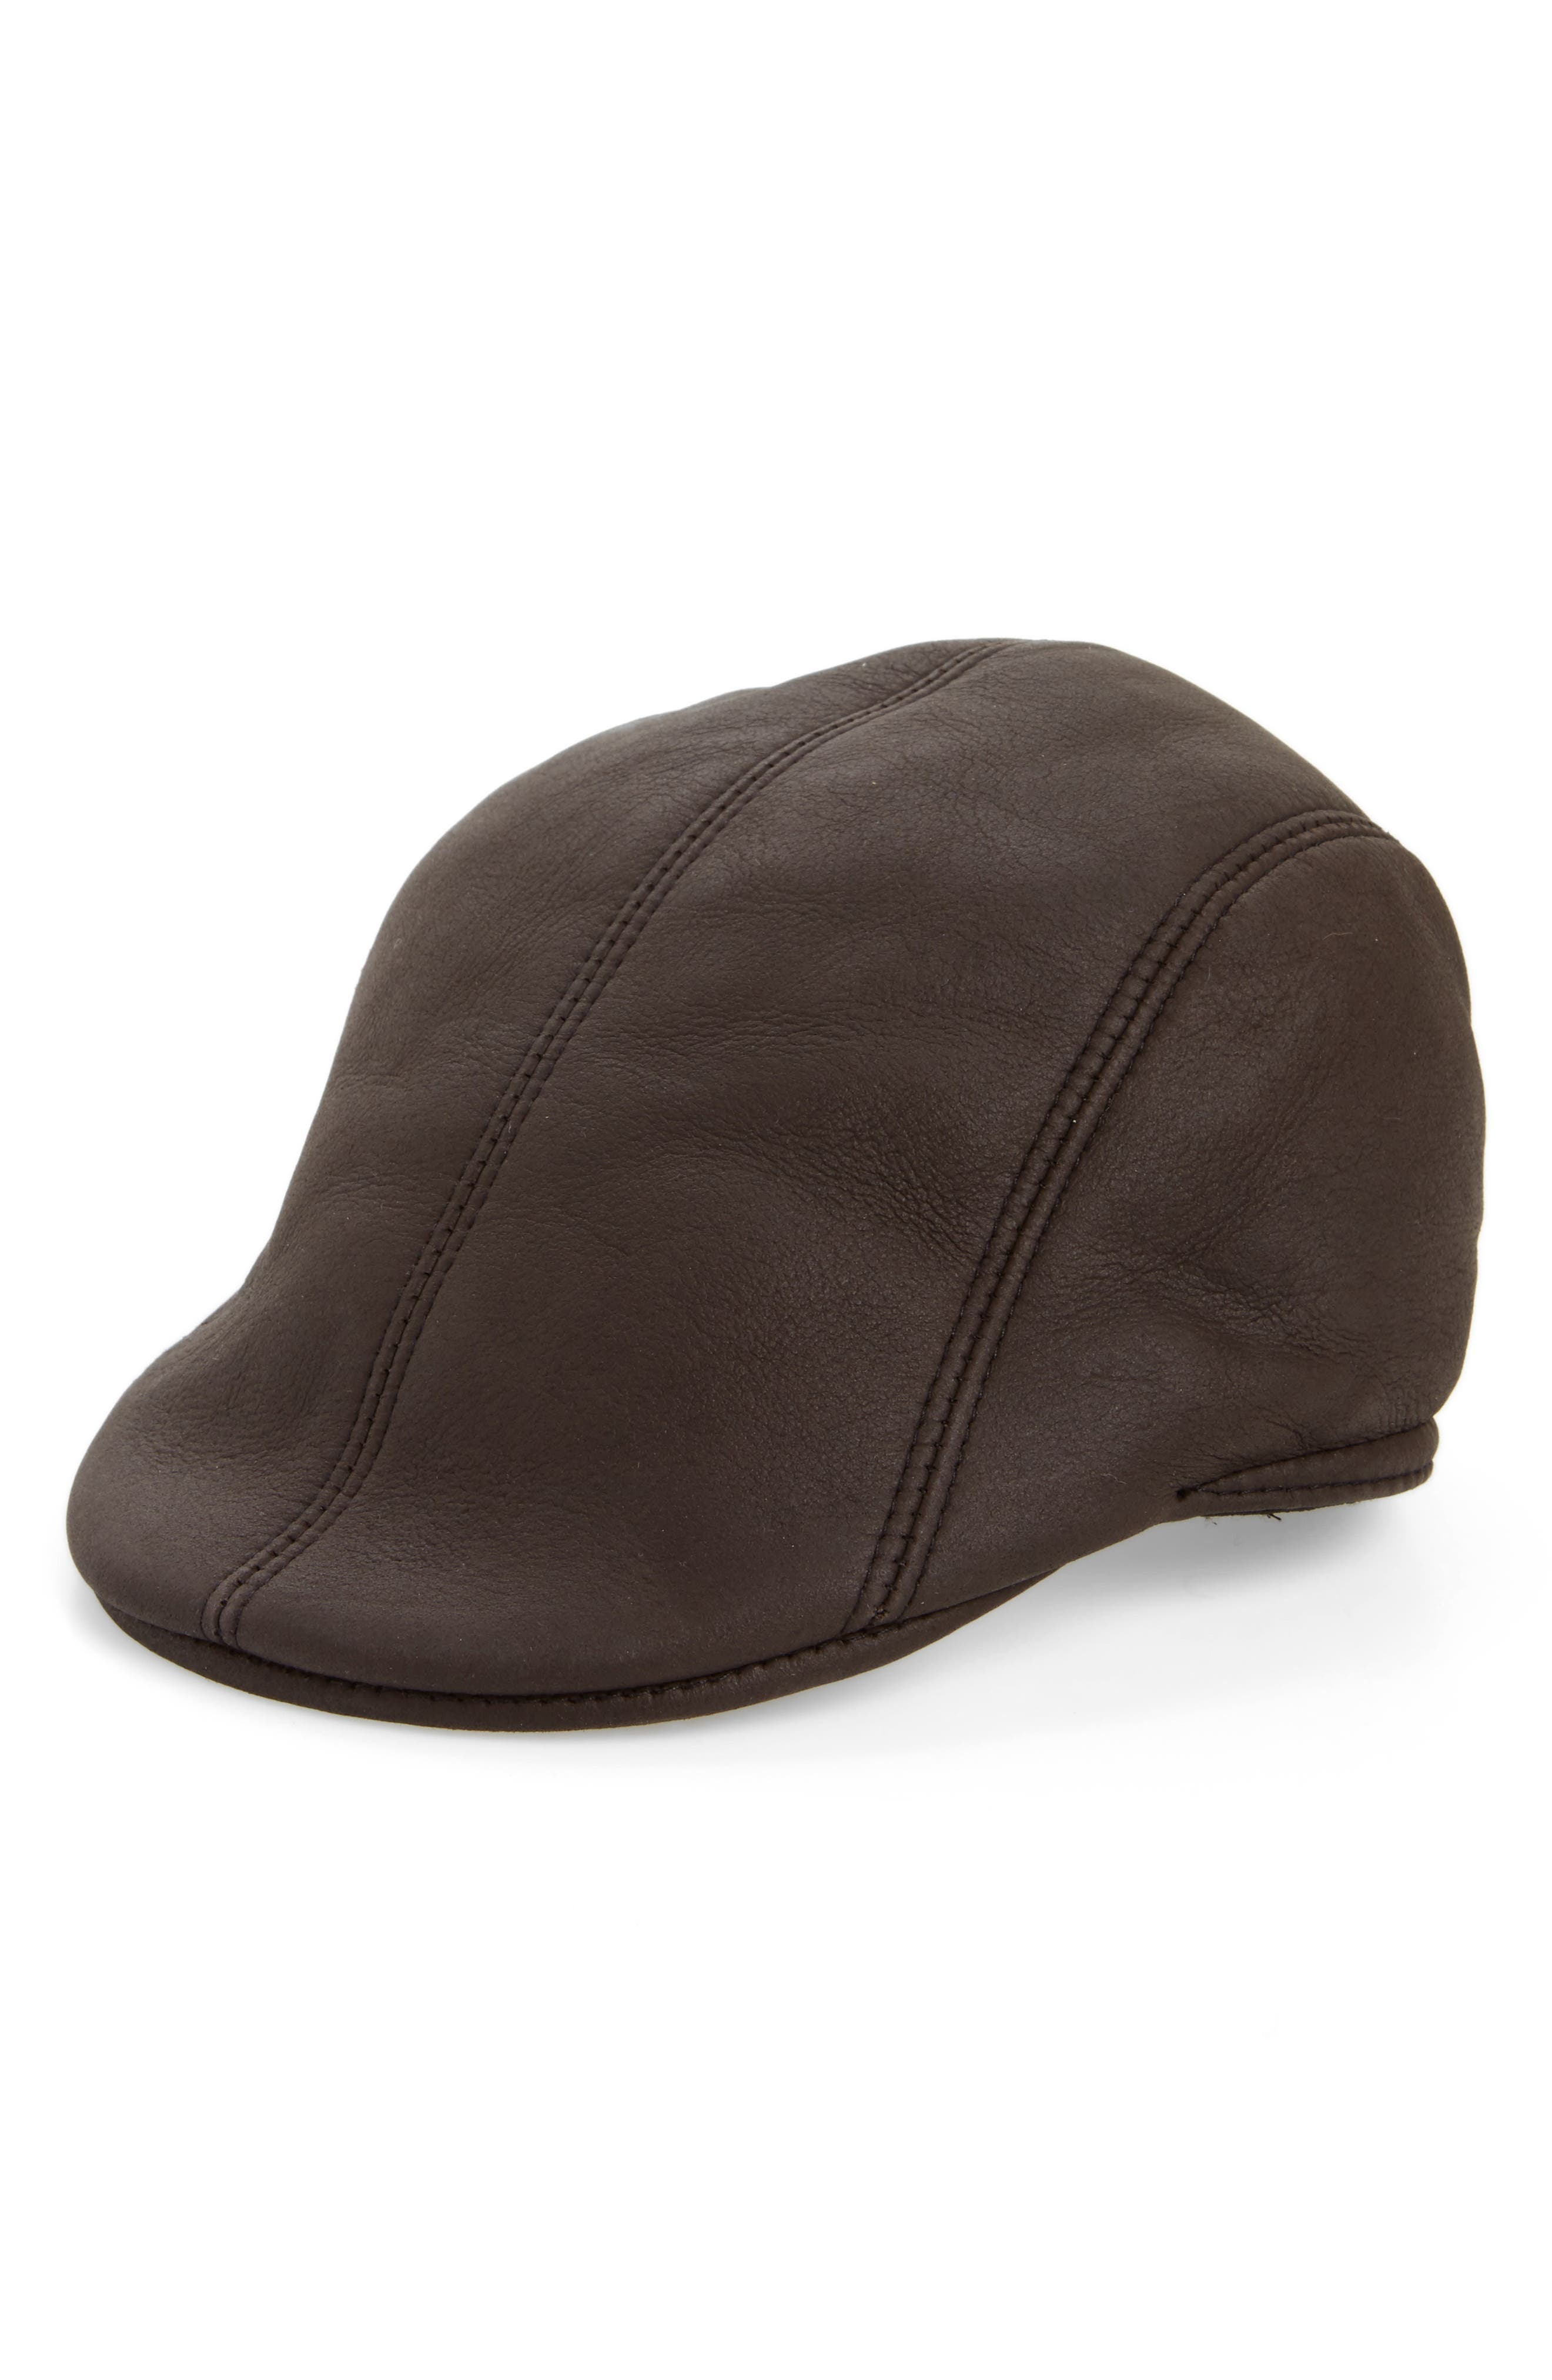 Genuine Shearling Leather Driving Cap,                             Main thumbnail 1, color,                             Brown